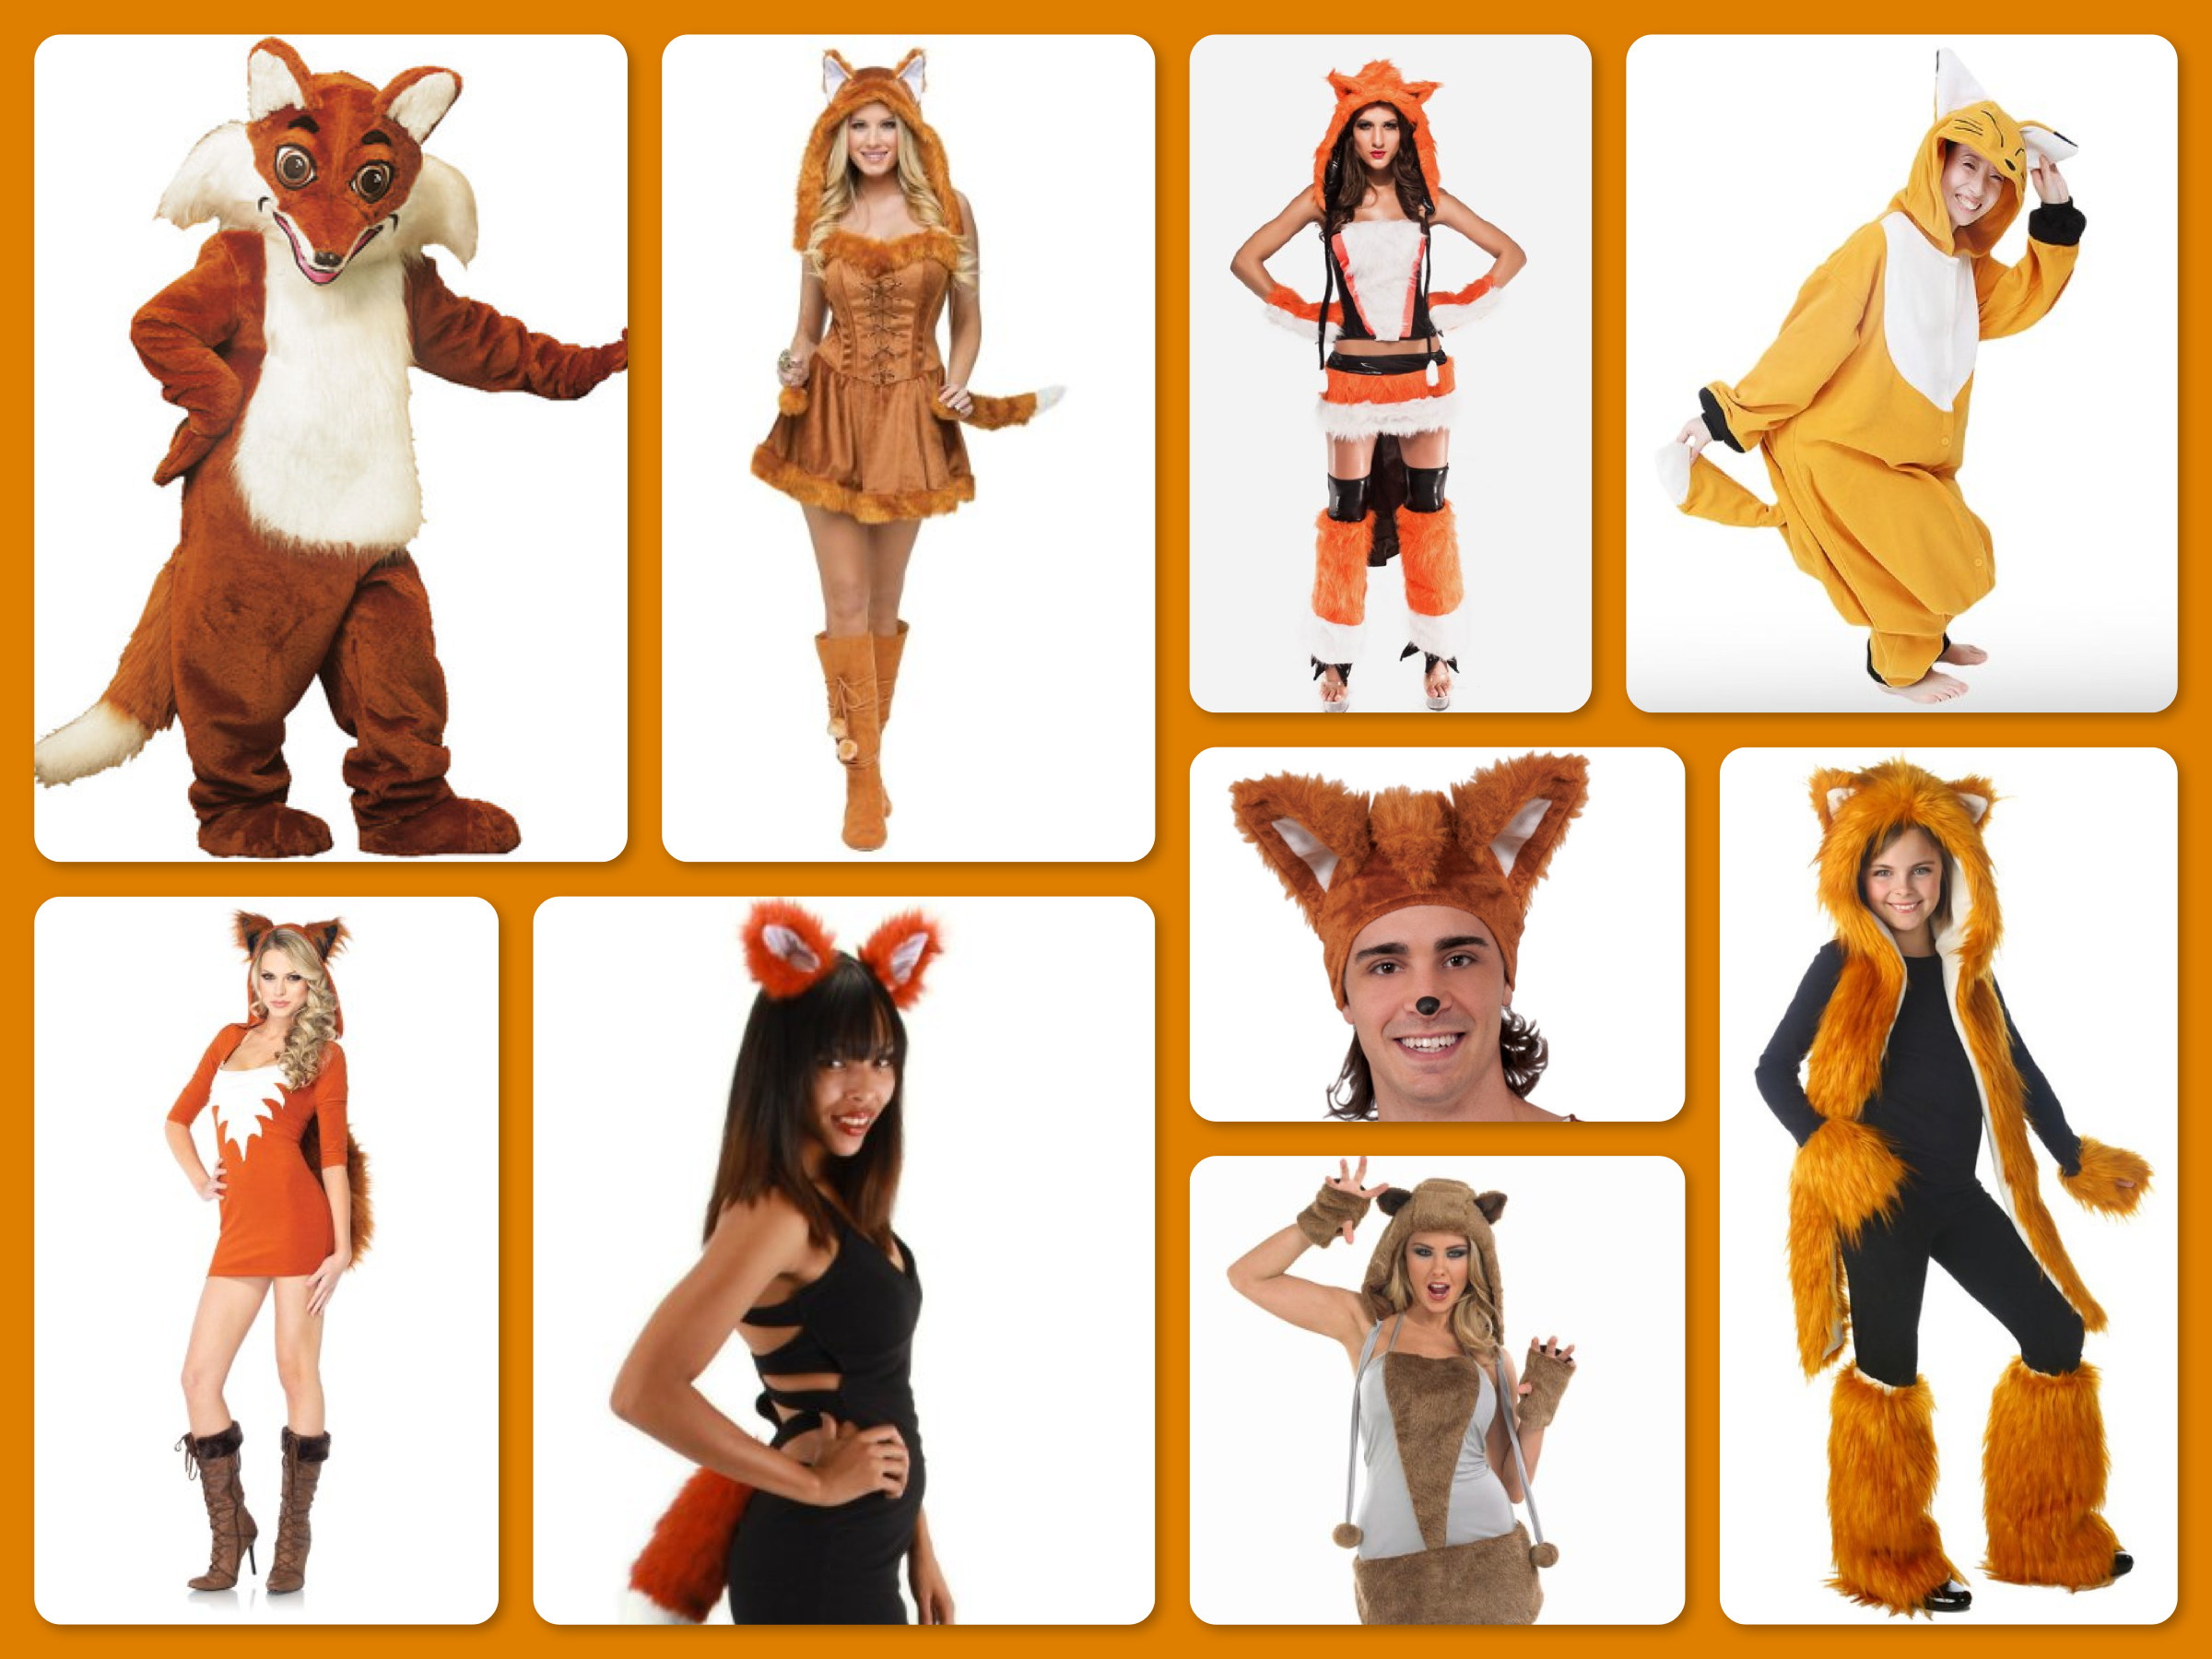 Halloween Costume Ideas | What Does the Fox Say Costumes | GreatGets.